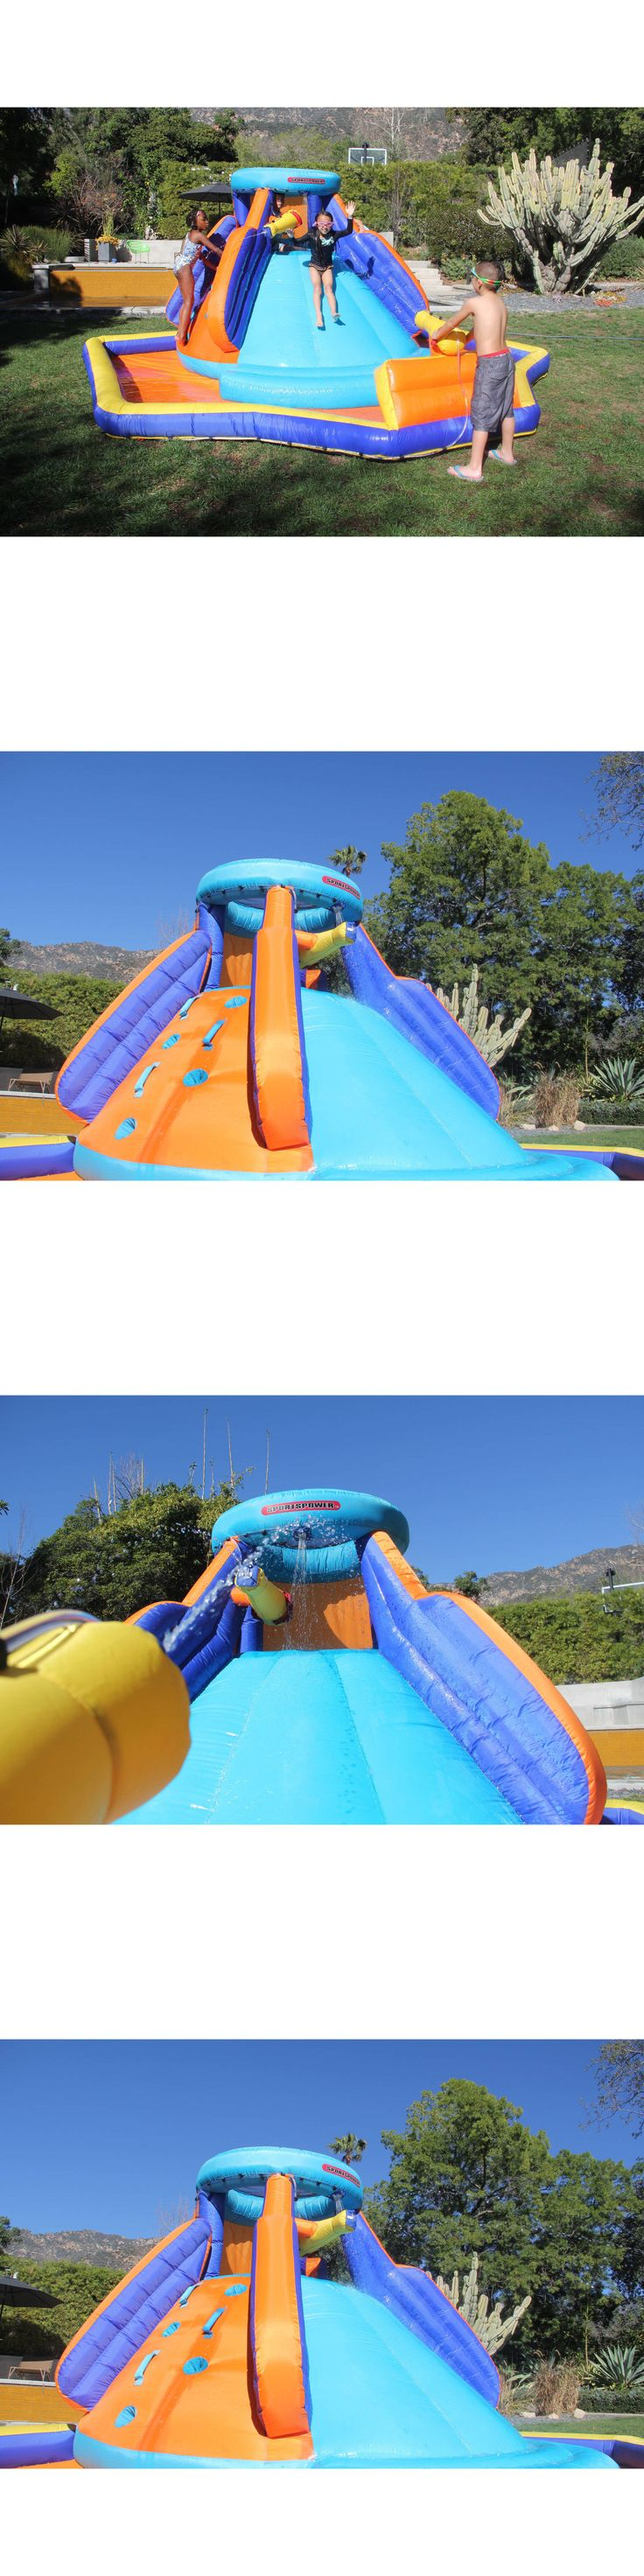 Water Slides 145992: Inflatable Water Slide Pool Swimming Bounce House Outdoor Kids Backyard Play -> BUY IT NOW ONLY: $399.33 on eBay!